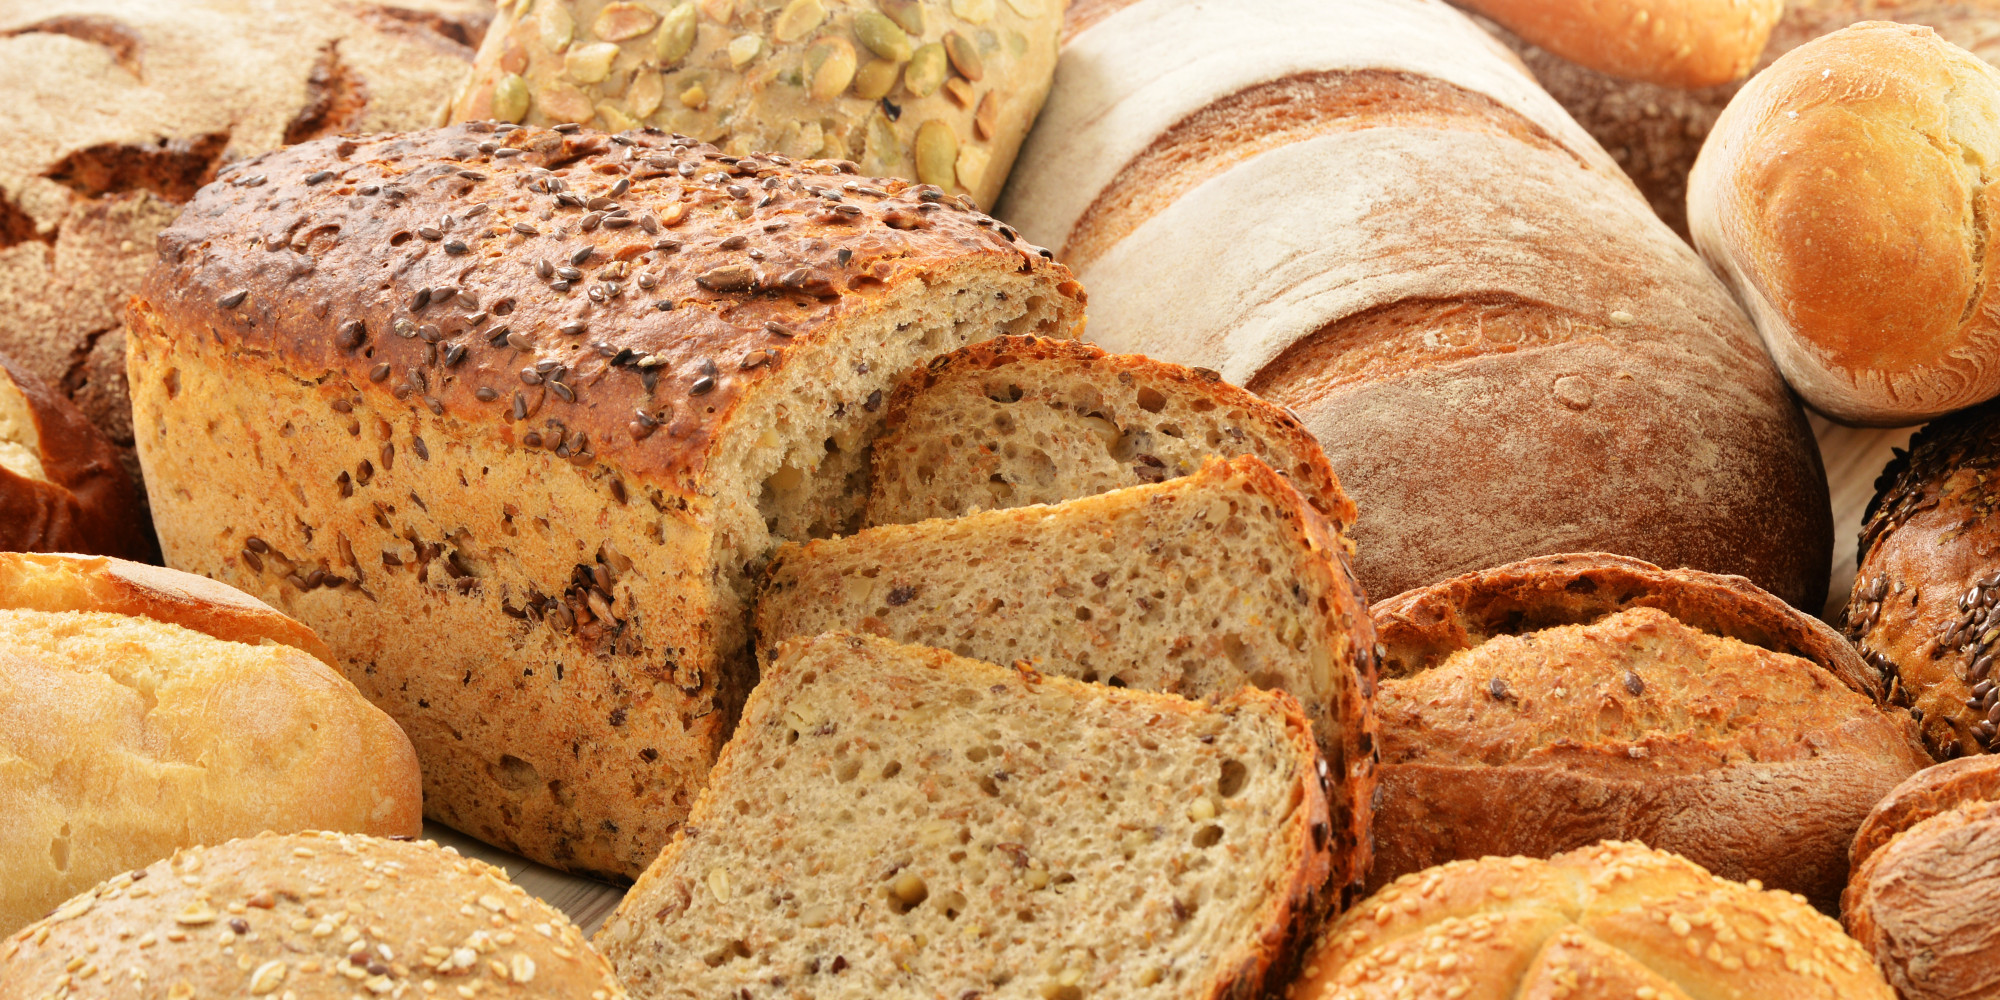 Gluten-free is not necessarily healthier OR will help you lose weight